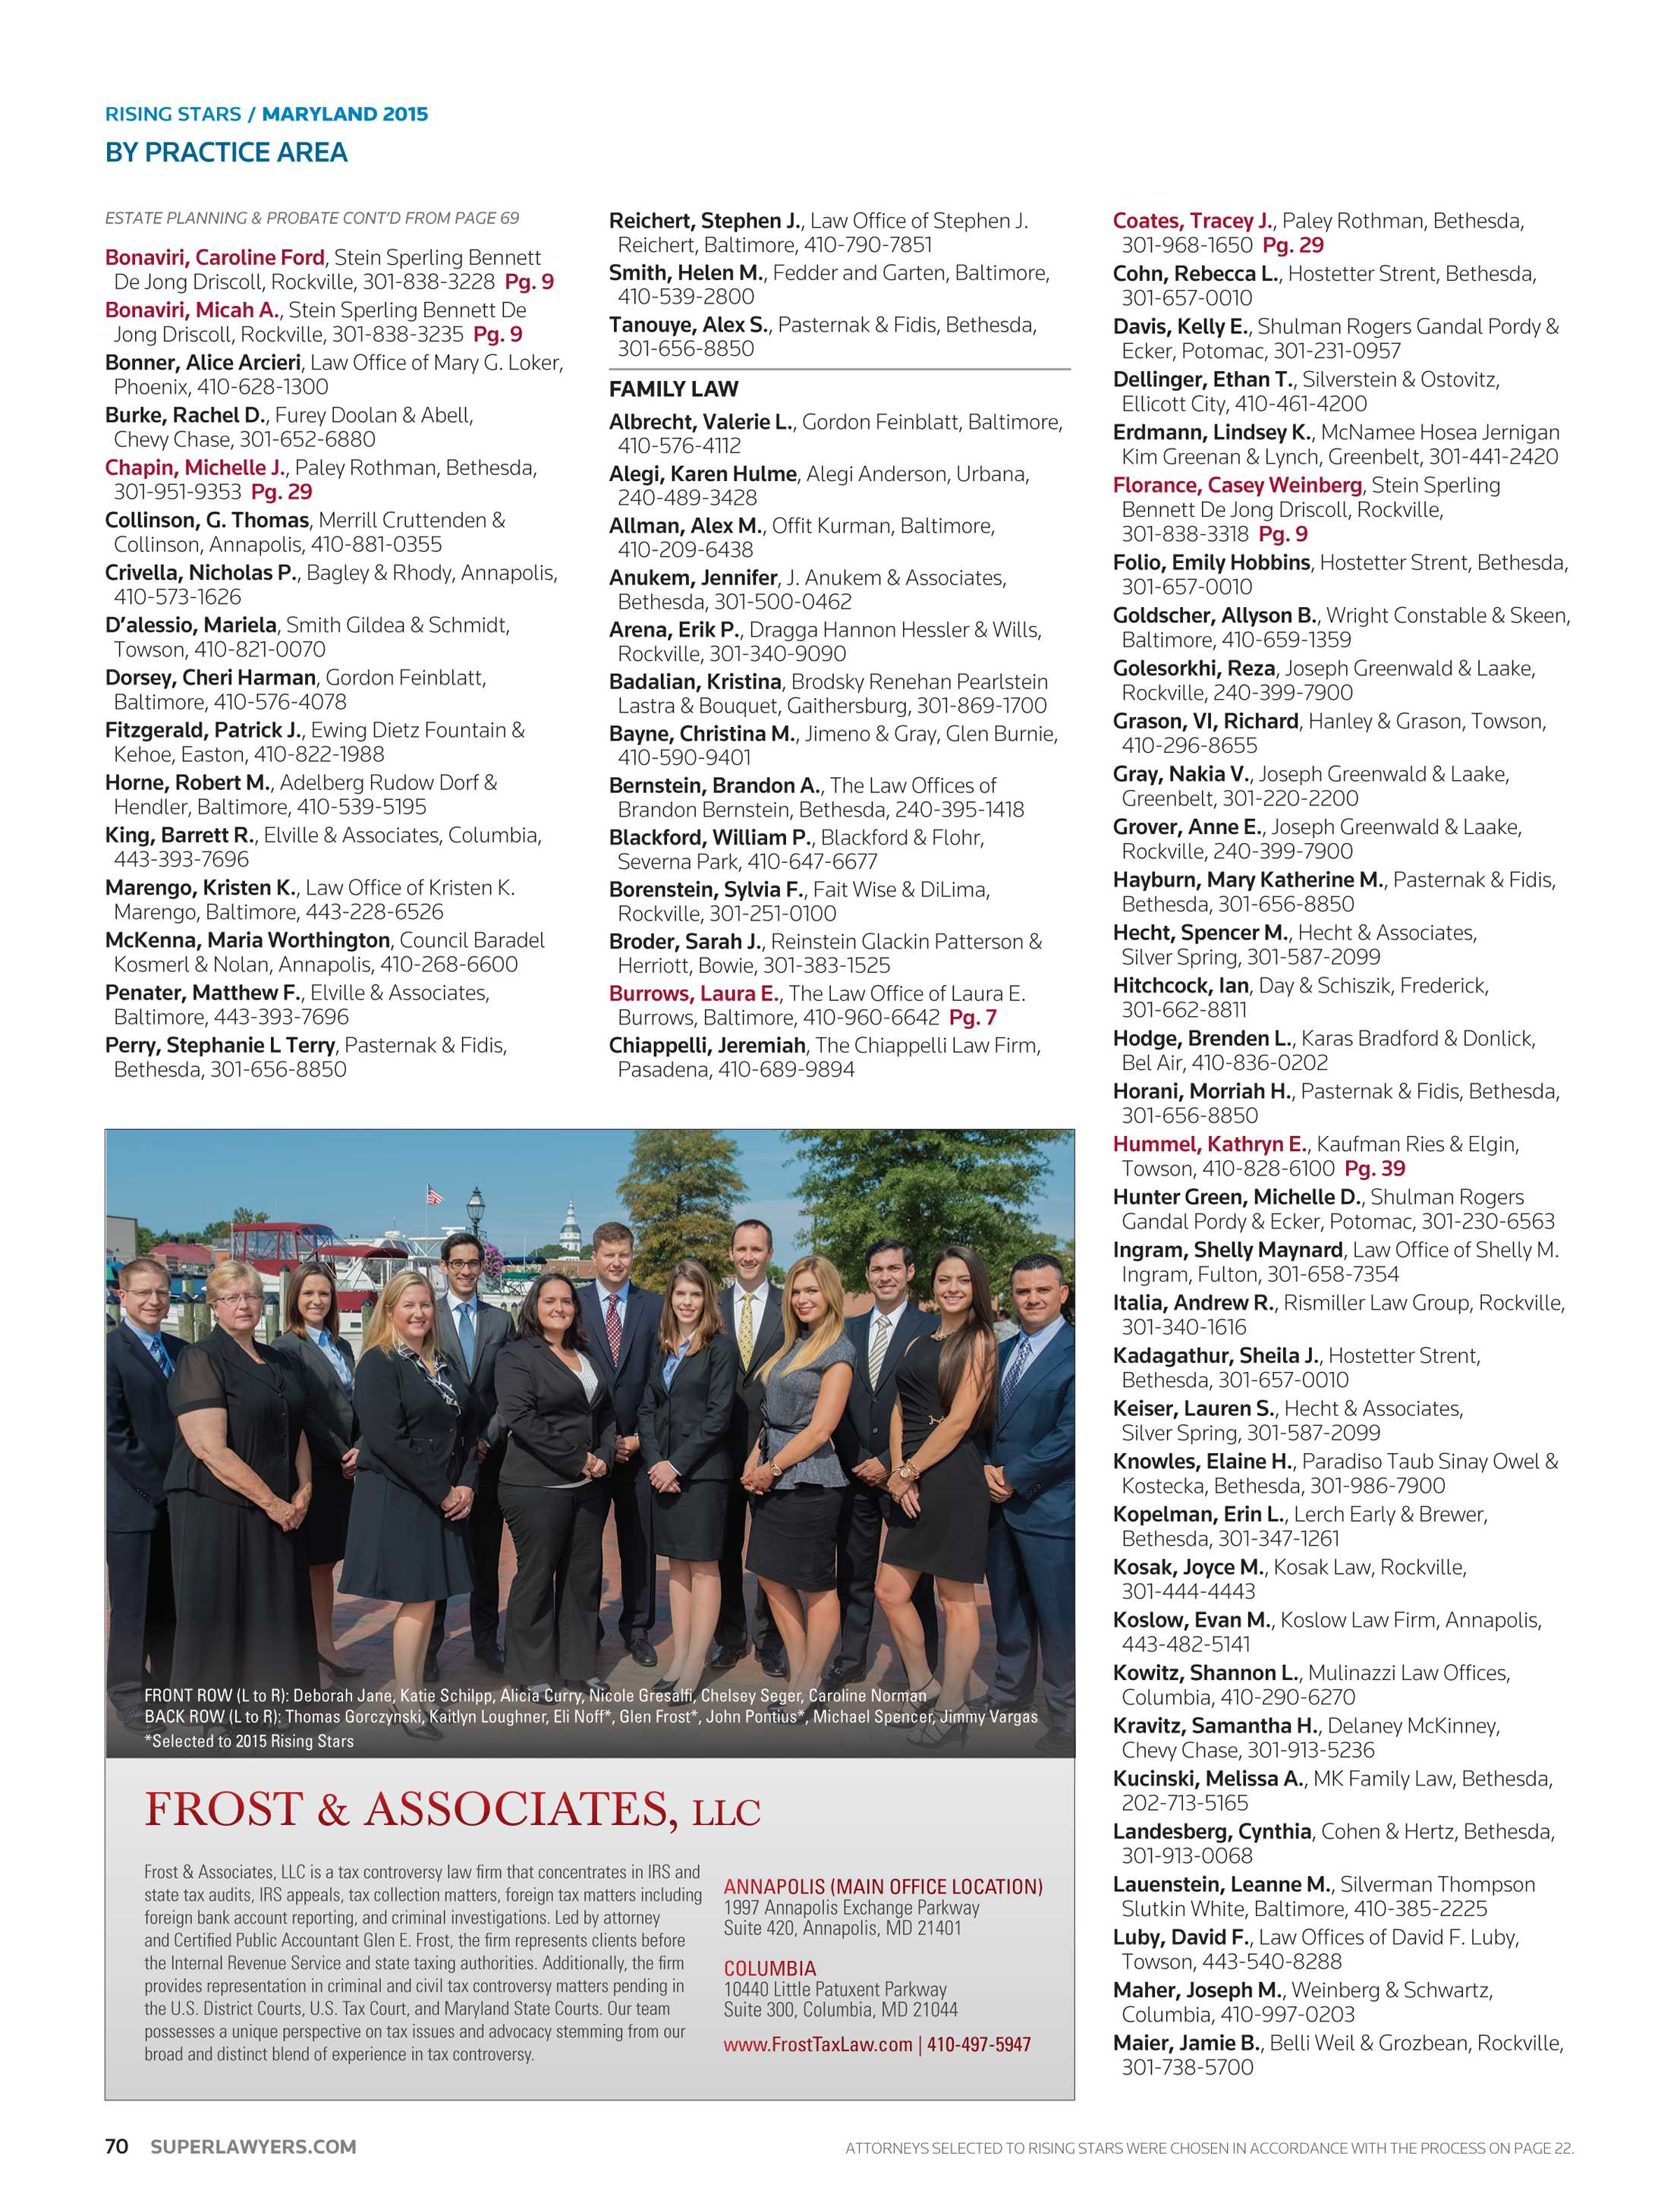 Hecht Garten Super Lawyers Maryland 2015 Page 70